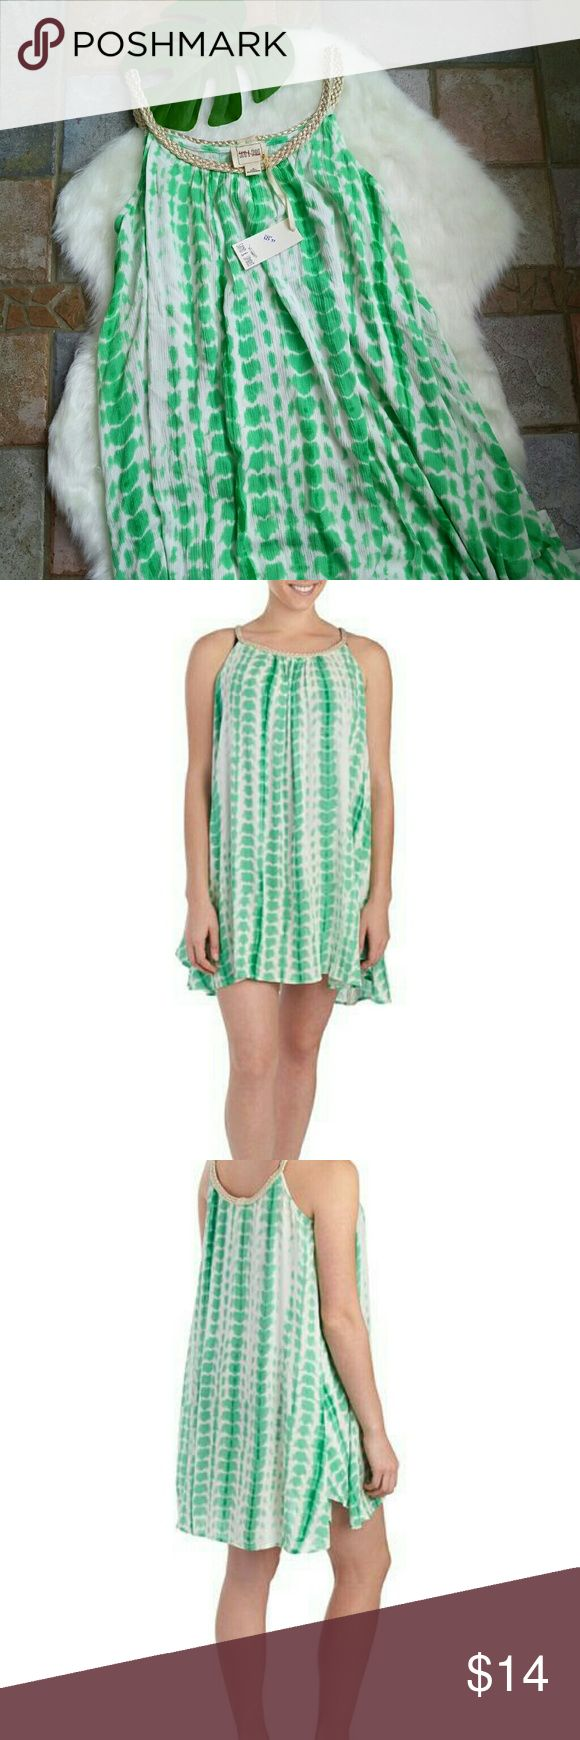 NWT tie dye 100% rayon beach cover up dress. Cute green dress with silver breaded straps size M. New condition. Can also be used as a maternity dress. Dresses Mini